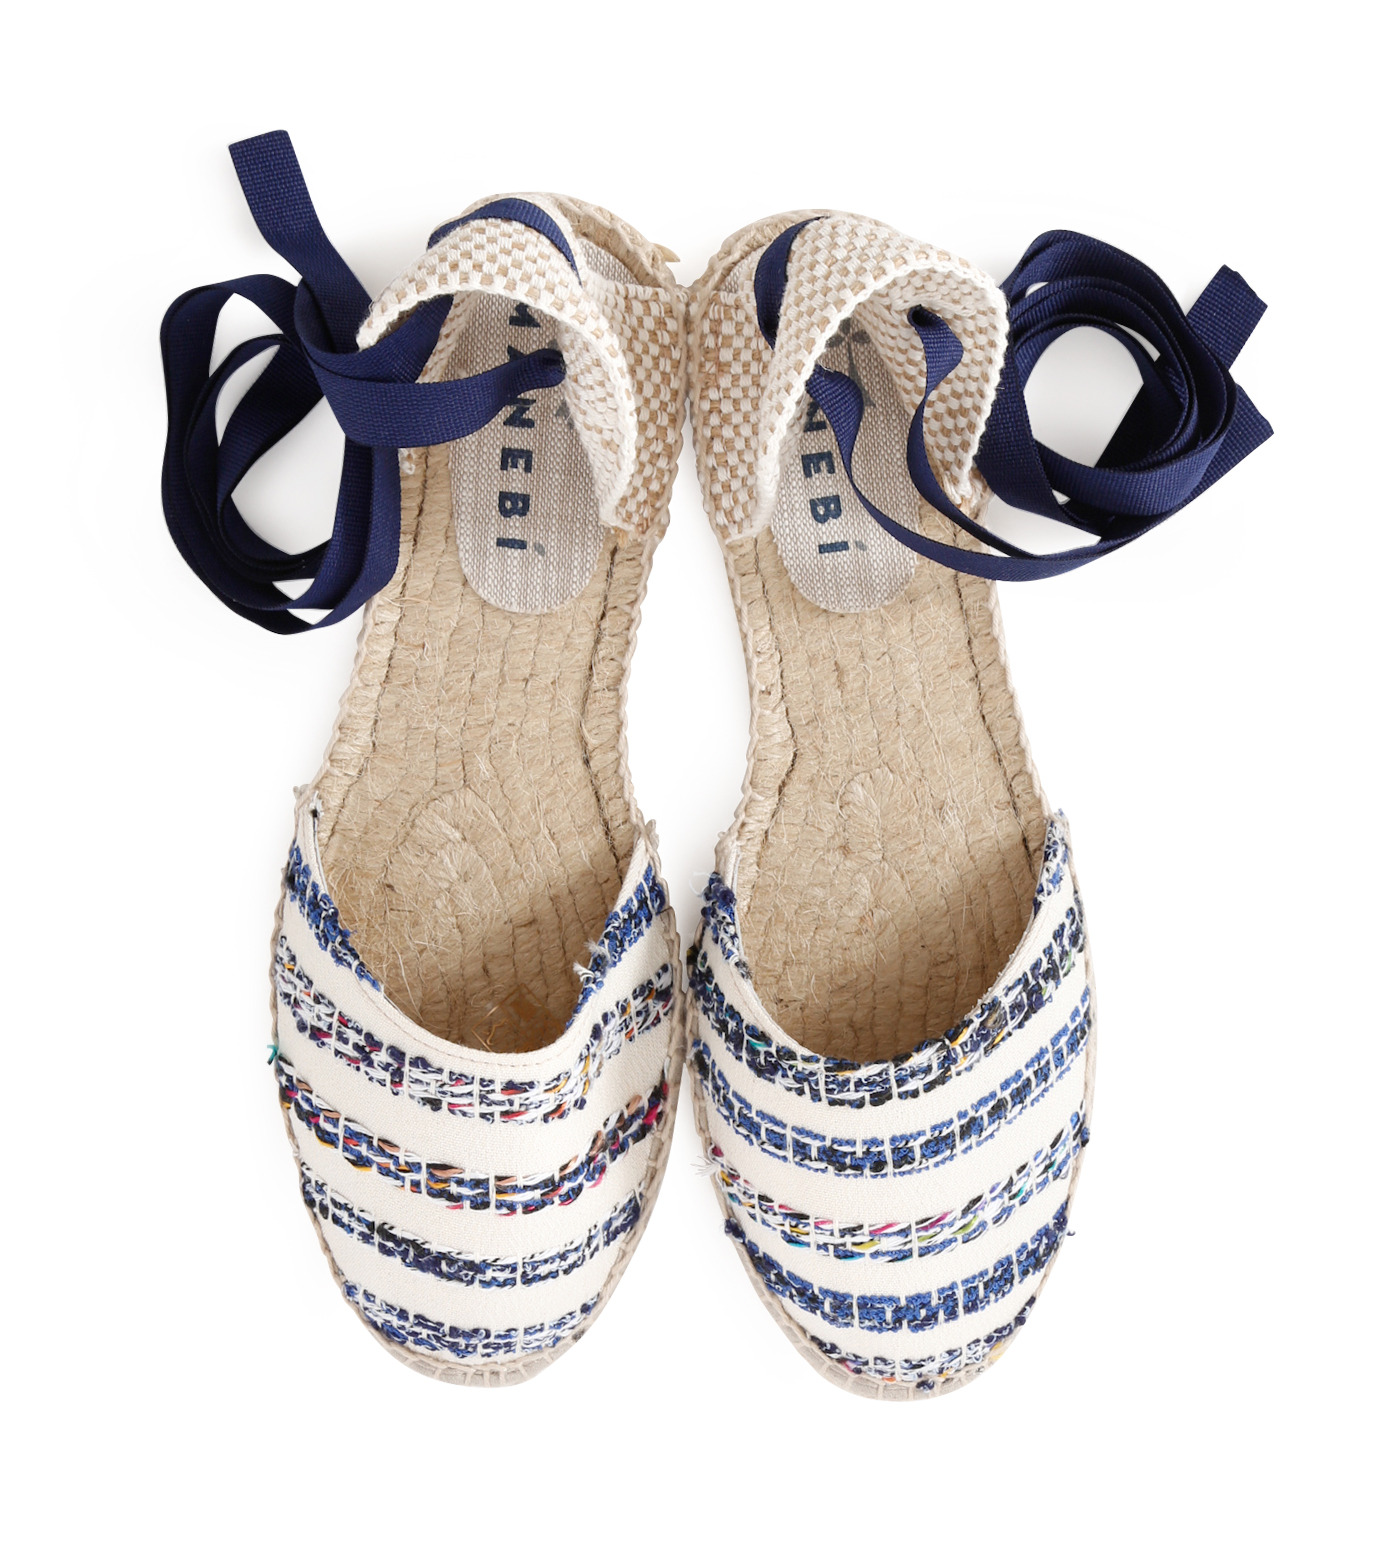 Manebi(マネビ)のtweed stripes ribbon sandals-BLUE(シューズ/shoes)-V-4-7-P-92 拡大詳細画像4